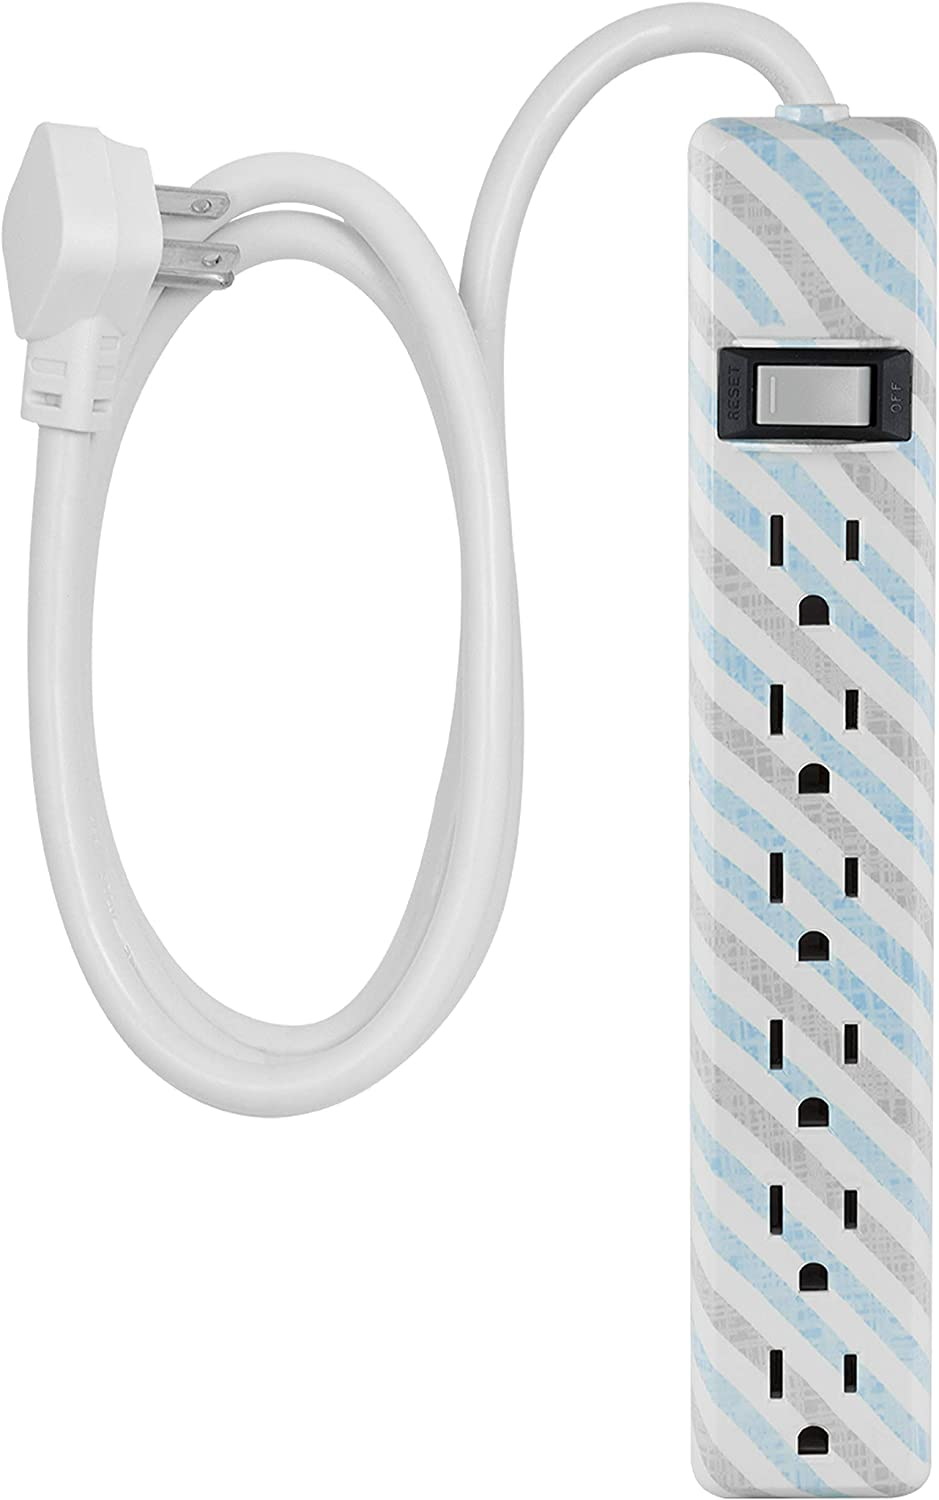 6 Outlet Power Strip, 4 Ft Power Cord, Flat Plug, Wall Mount, For Bedroom, Dorm, or Home Décor, Power Switch, Integrated Circuit Breaker, UL Listed, White, Gray & Mint Stripes, 31040